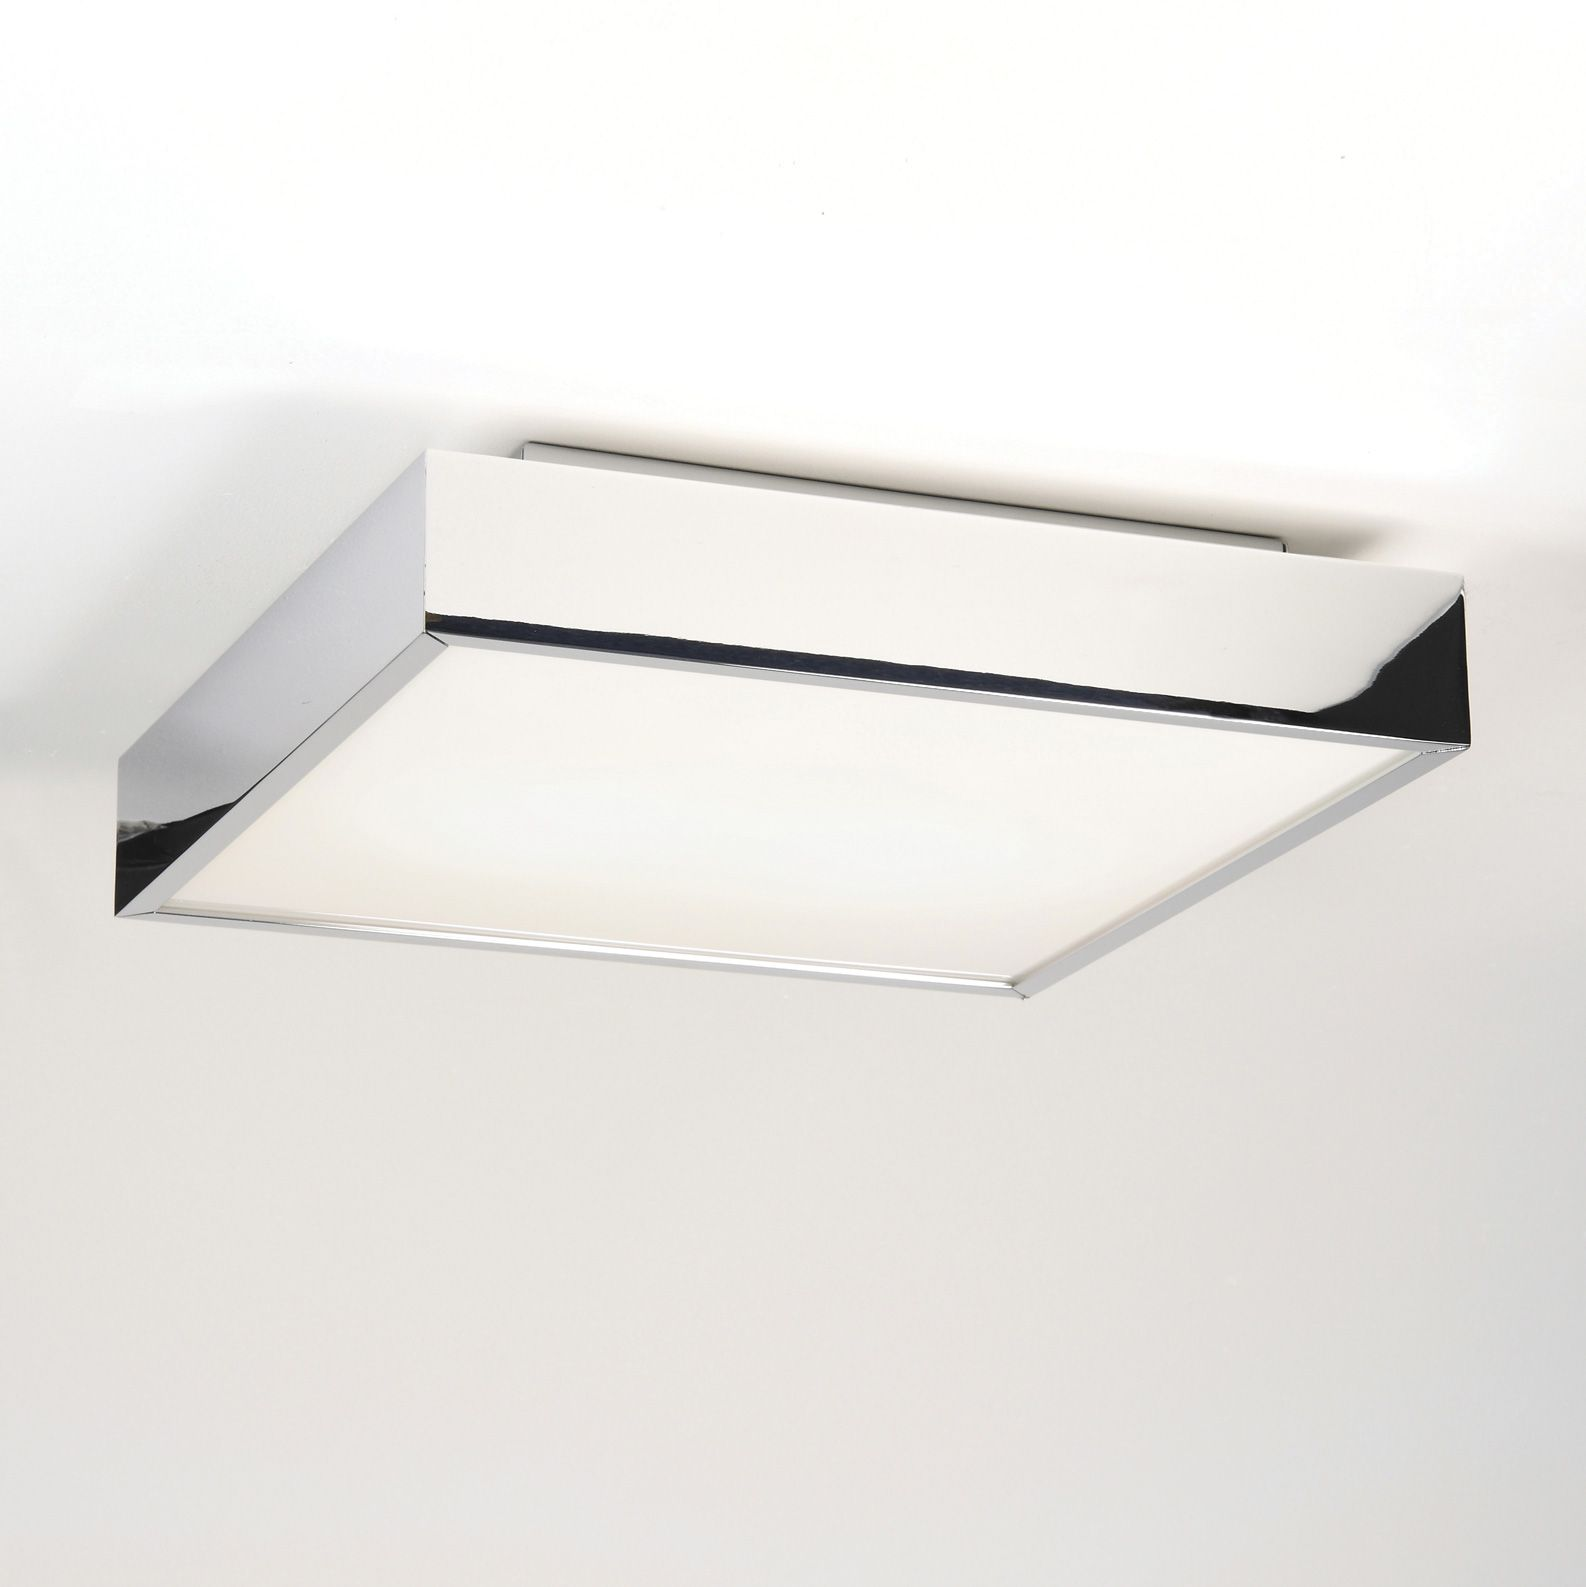 91 Reference Of Bathroom Ceiling Light Square In 2020 Bathroom Ceiling Light Ceiling Lights Led Bathroom Lights